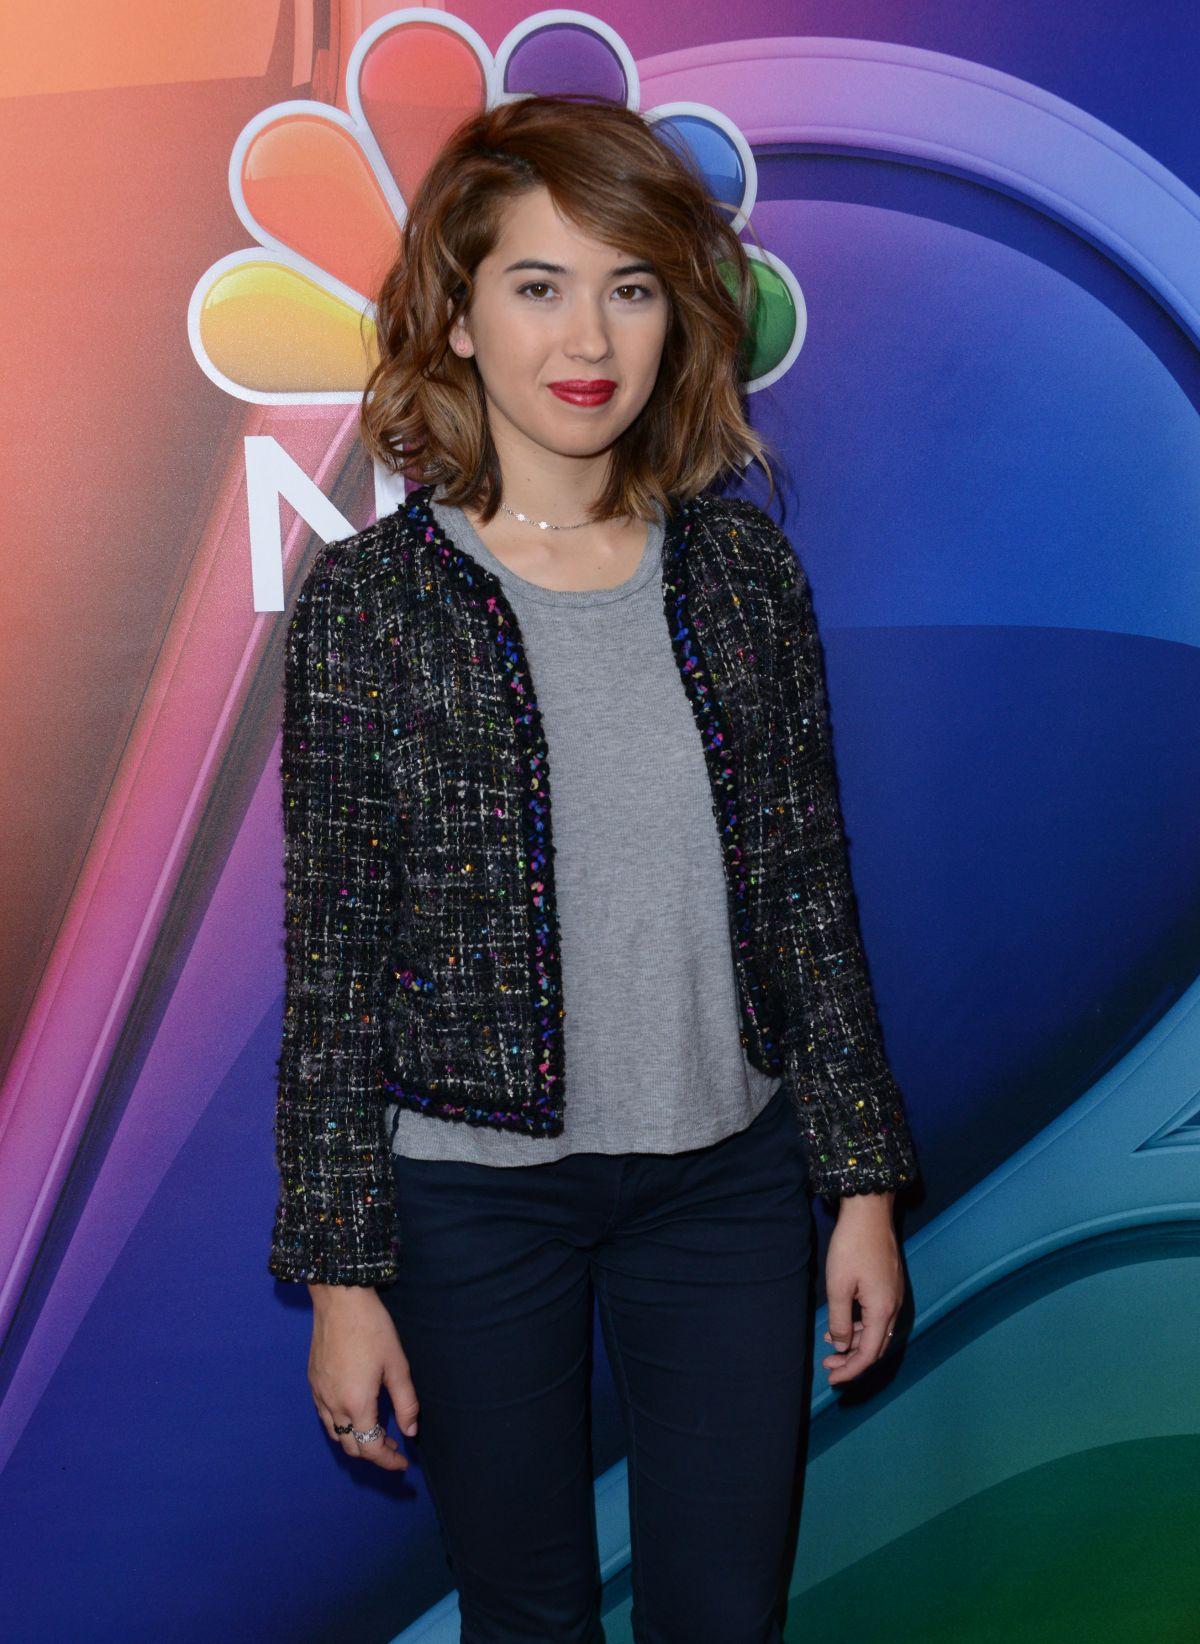 NICHOLE BLOOM at NBC/Universal 2016 Winter TCA Tour in Pasadena 01/13/2016